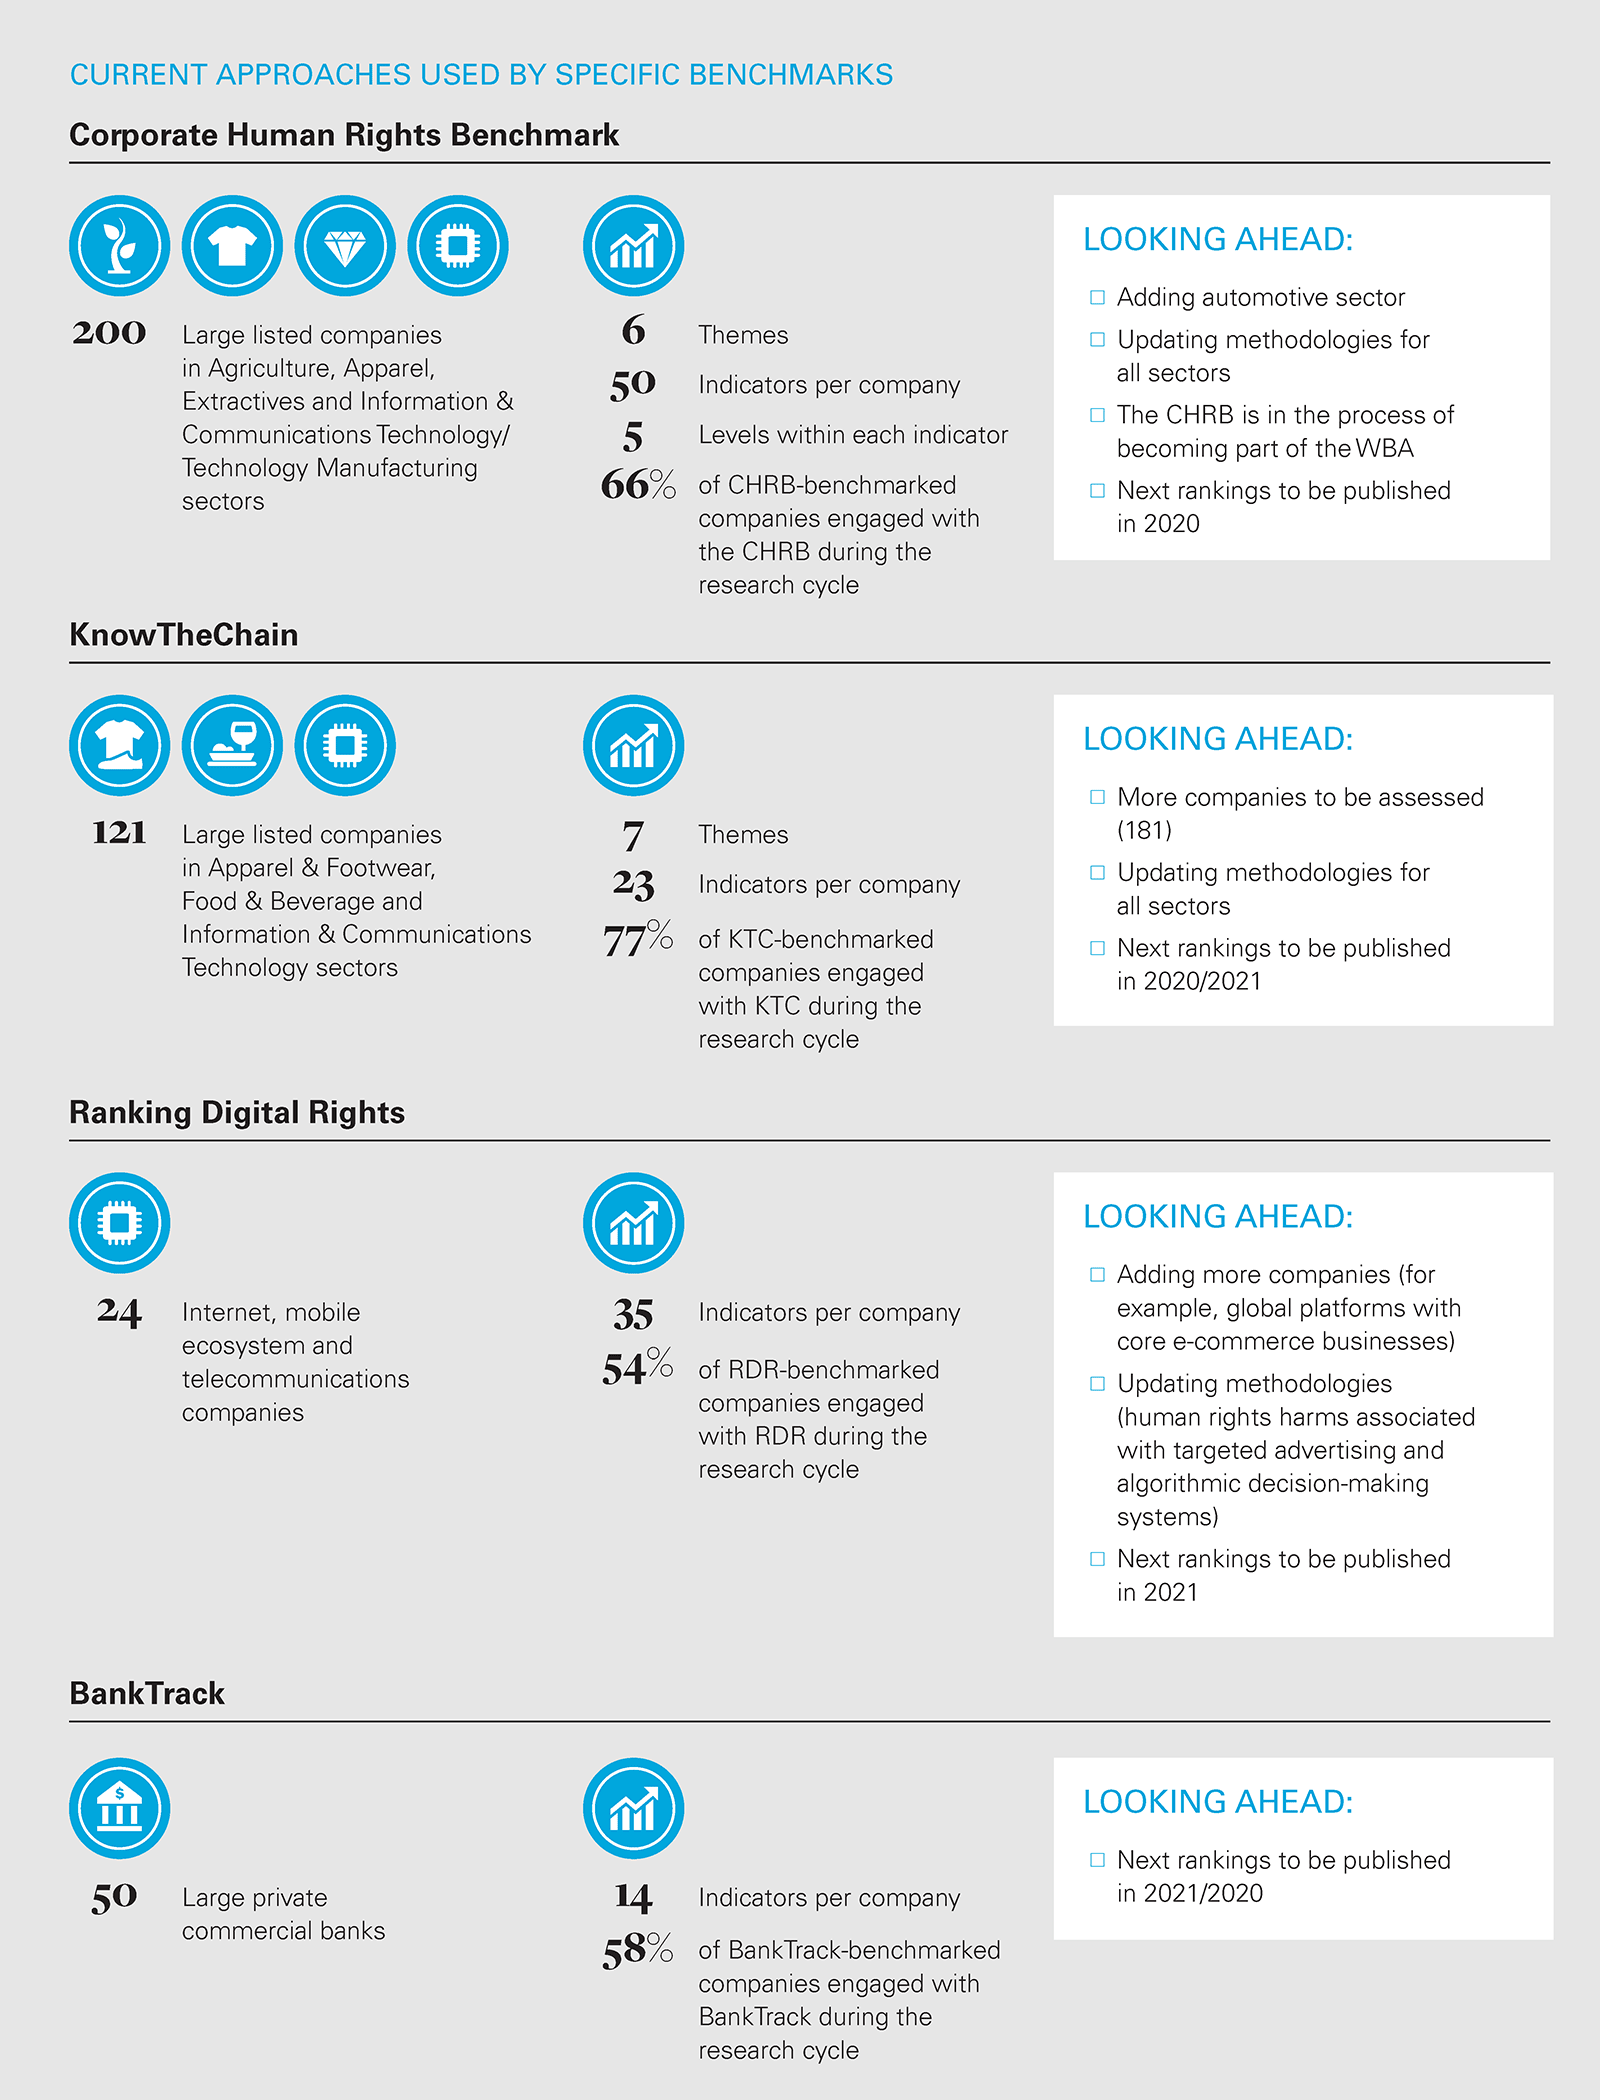 approaches used by benchmarks (PNG chart)